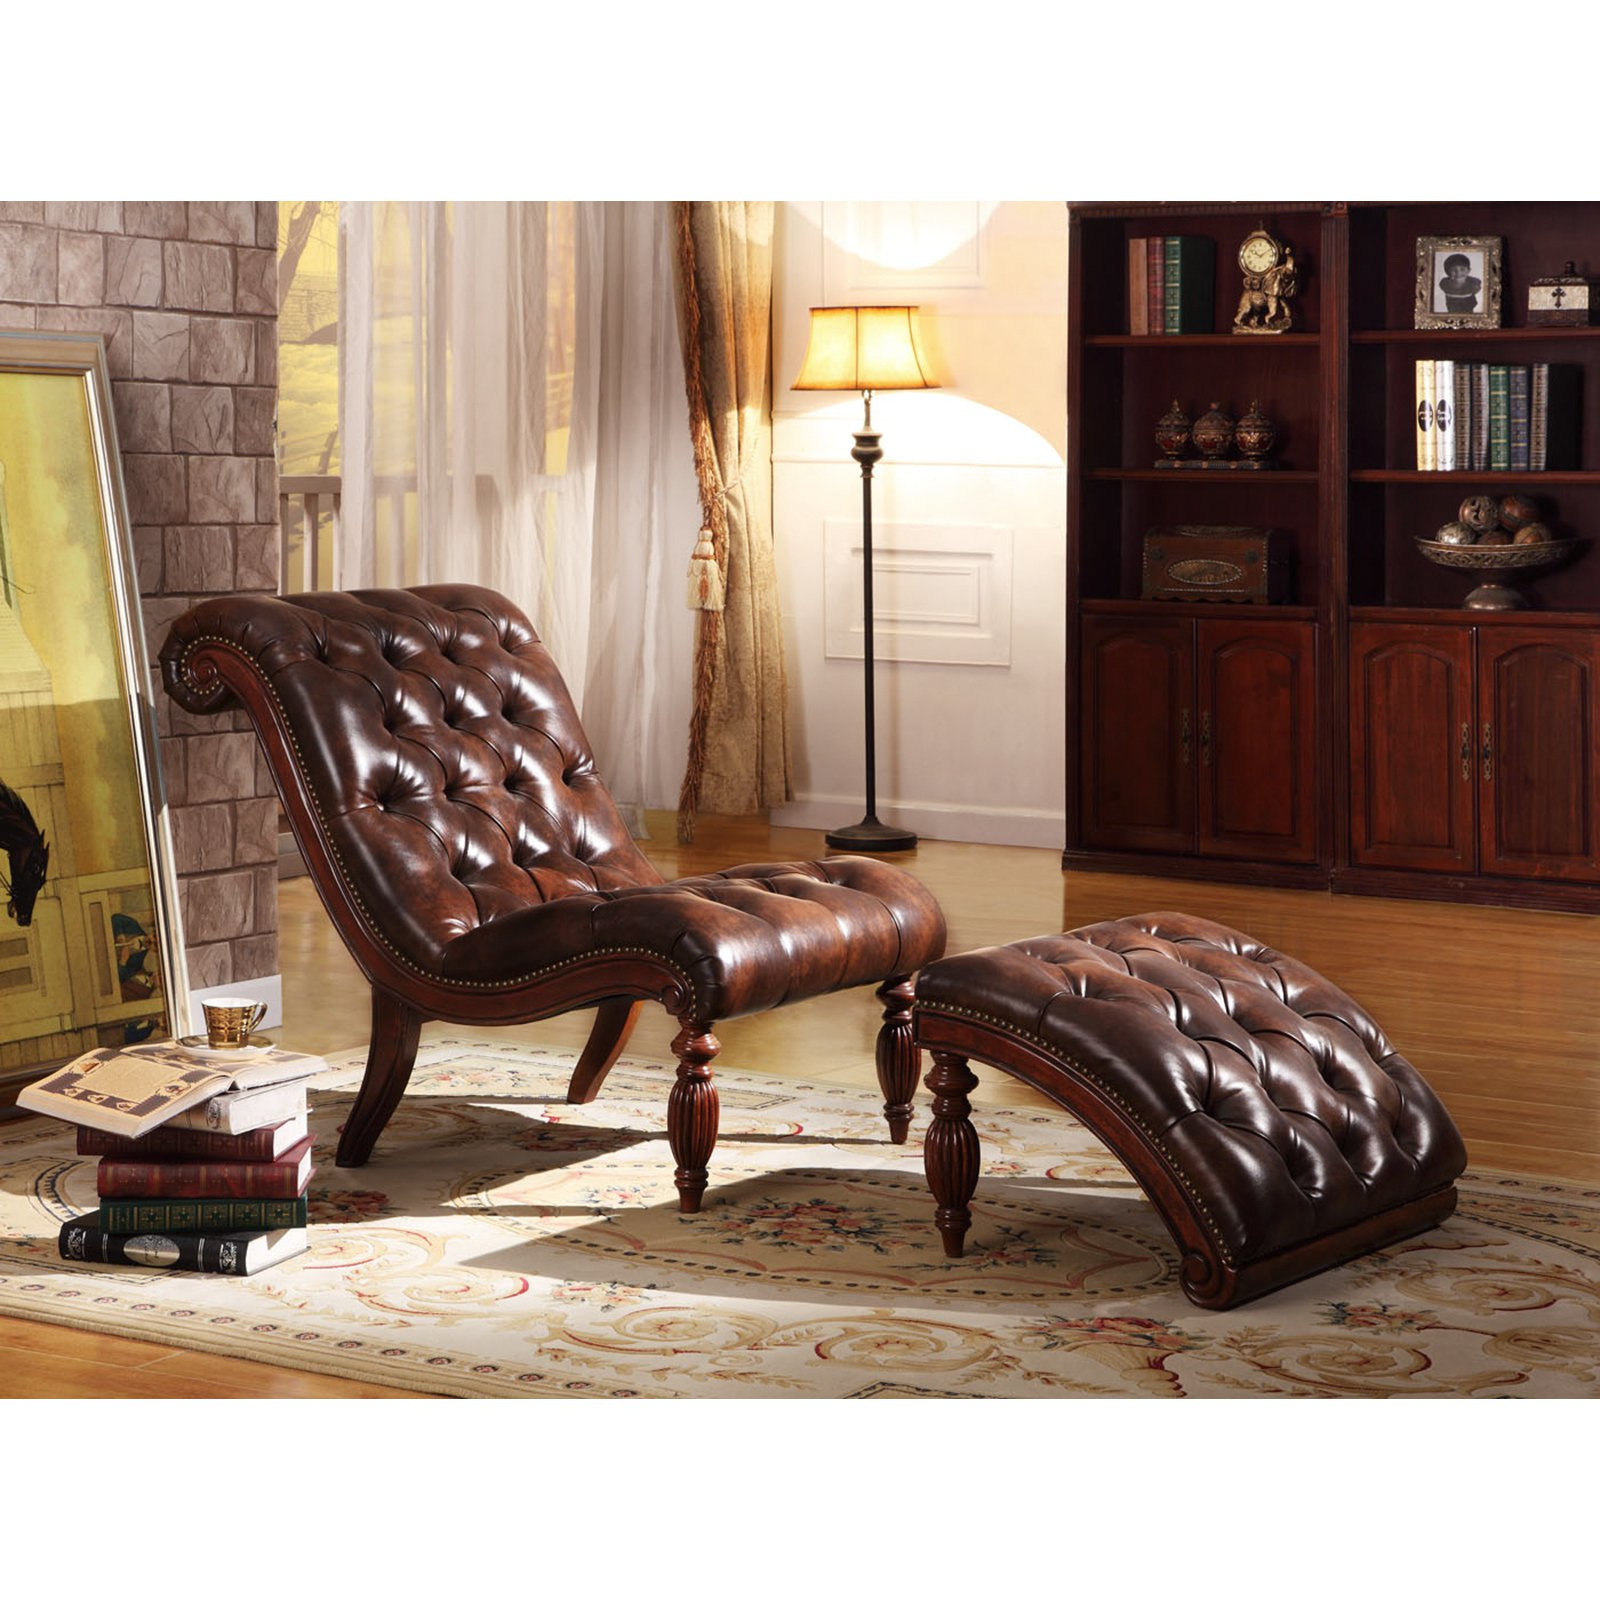 Weston Home Faux Leather On Tufted Chaise And Ottoman Brown